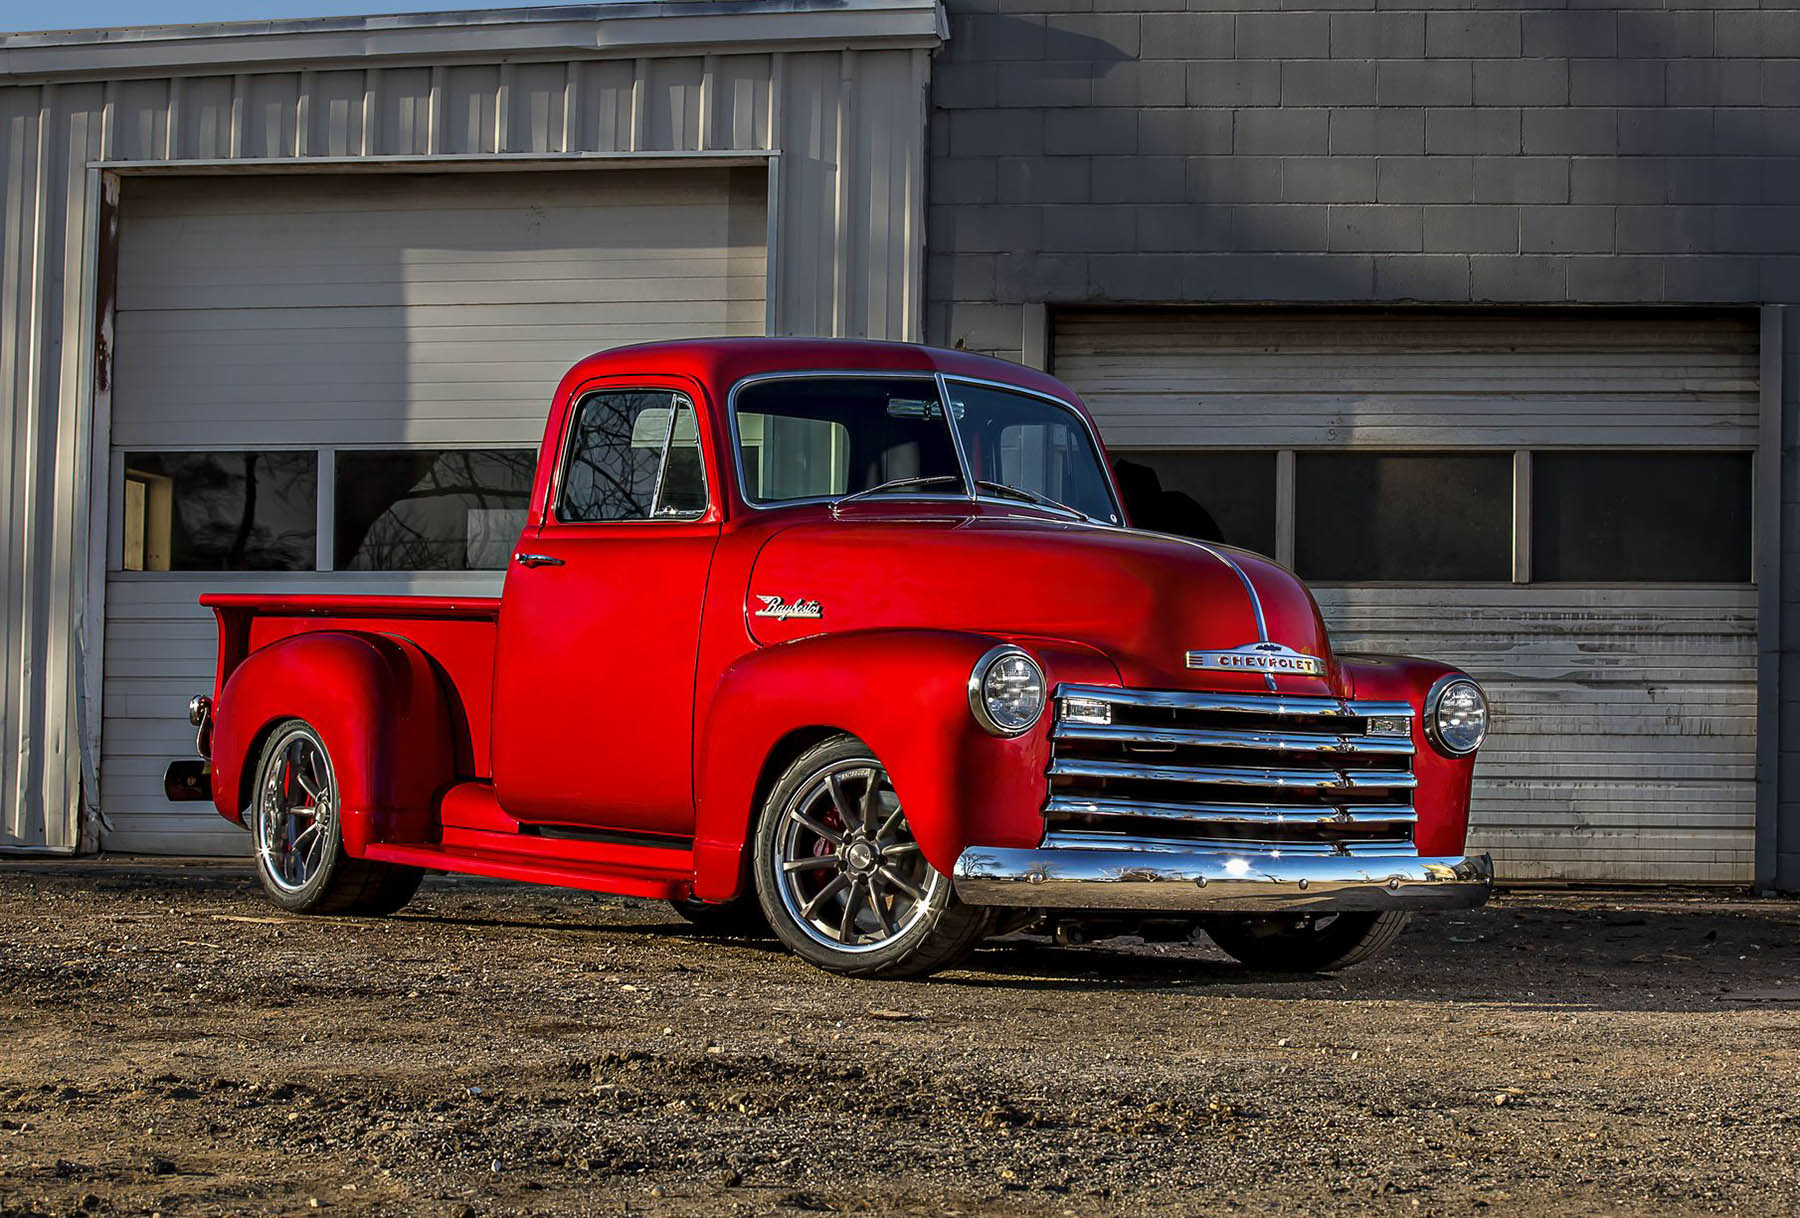 1953 Chevy 3600 Truck with a L83 V8